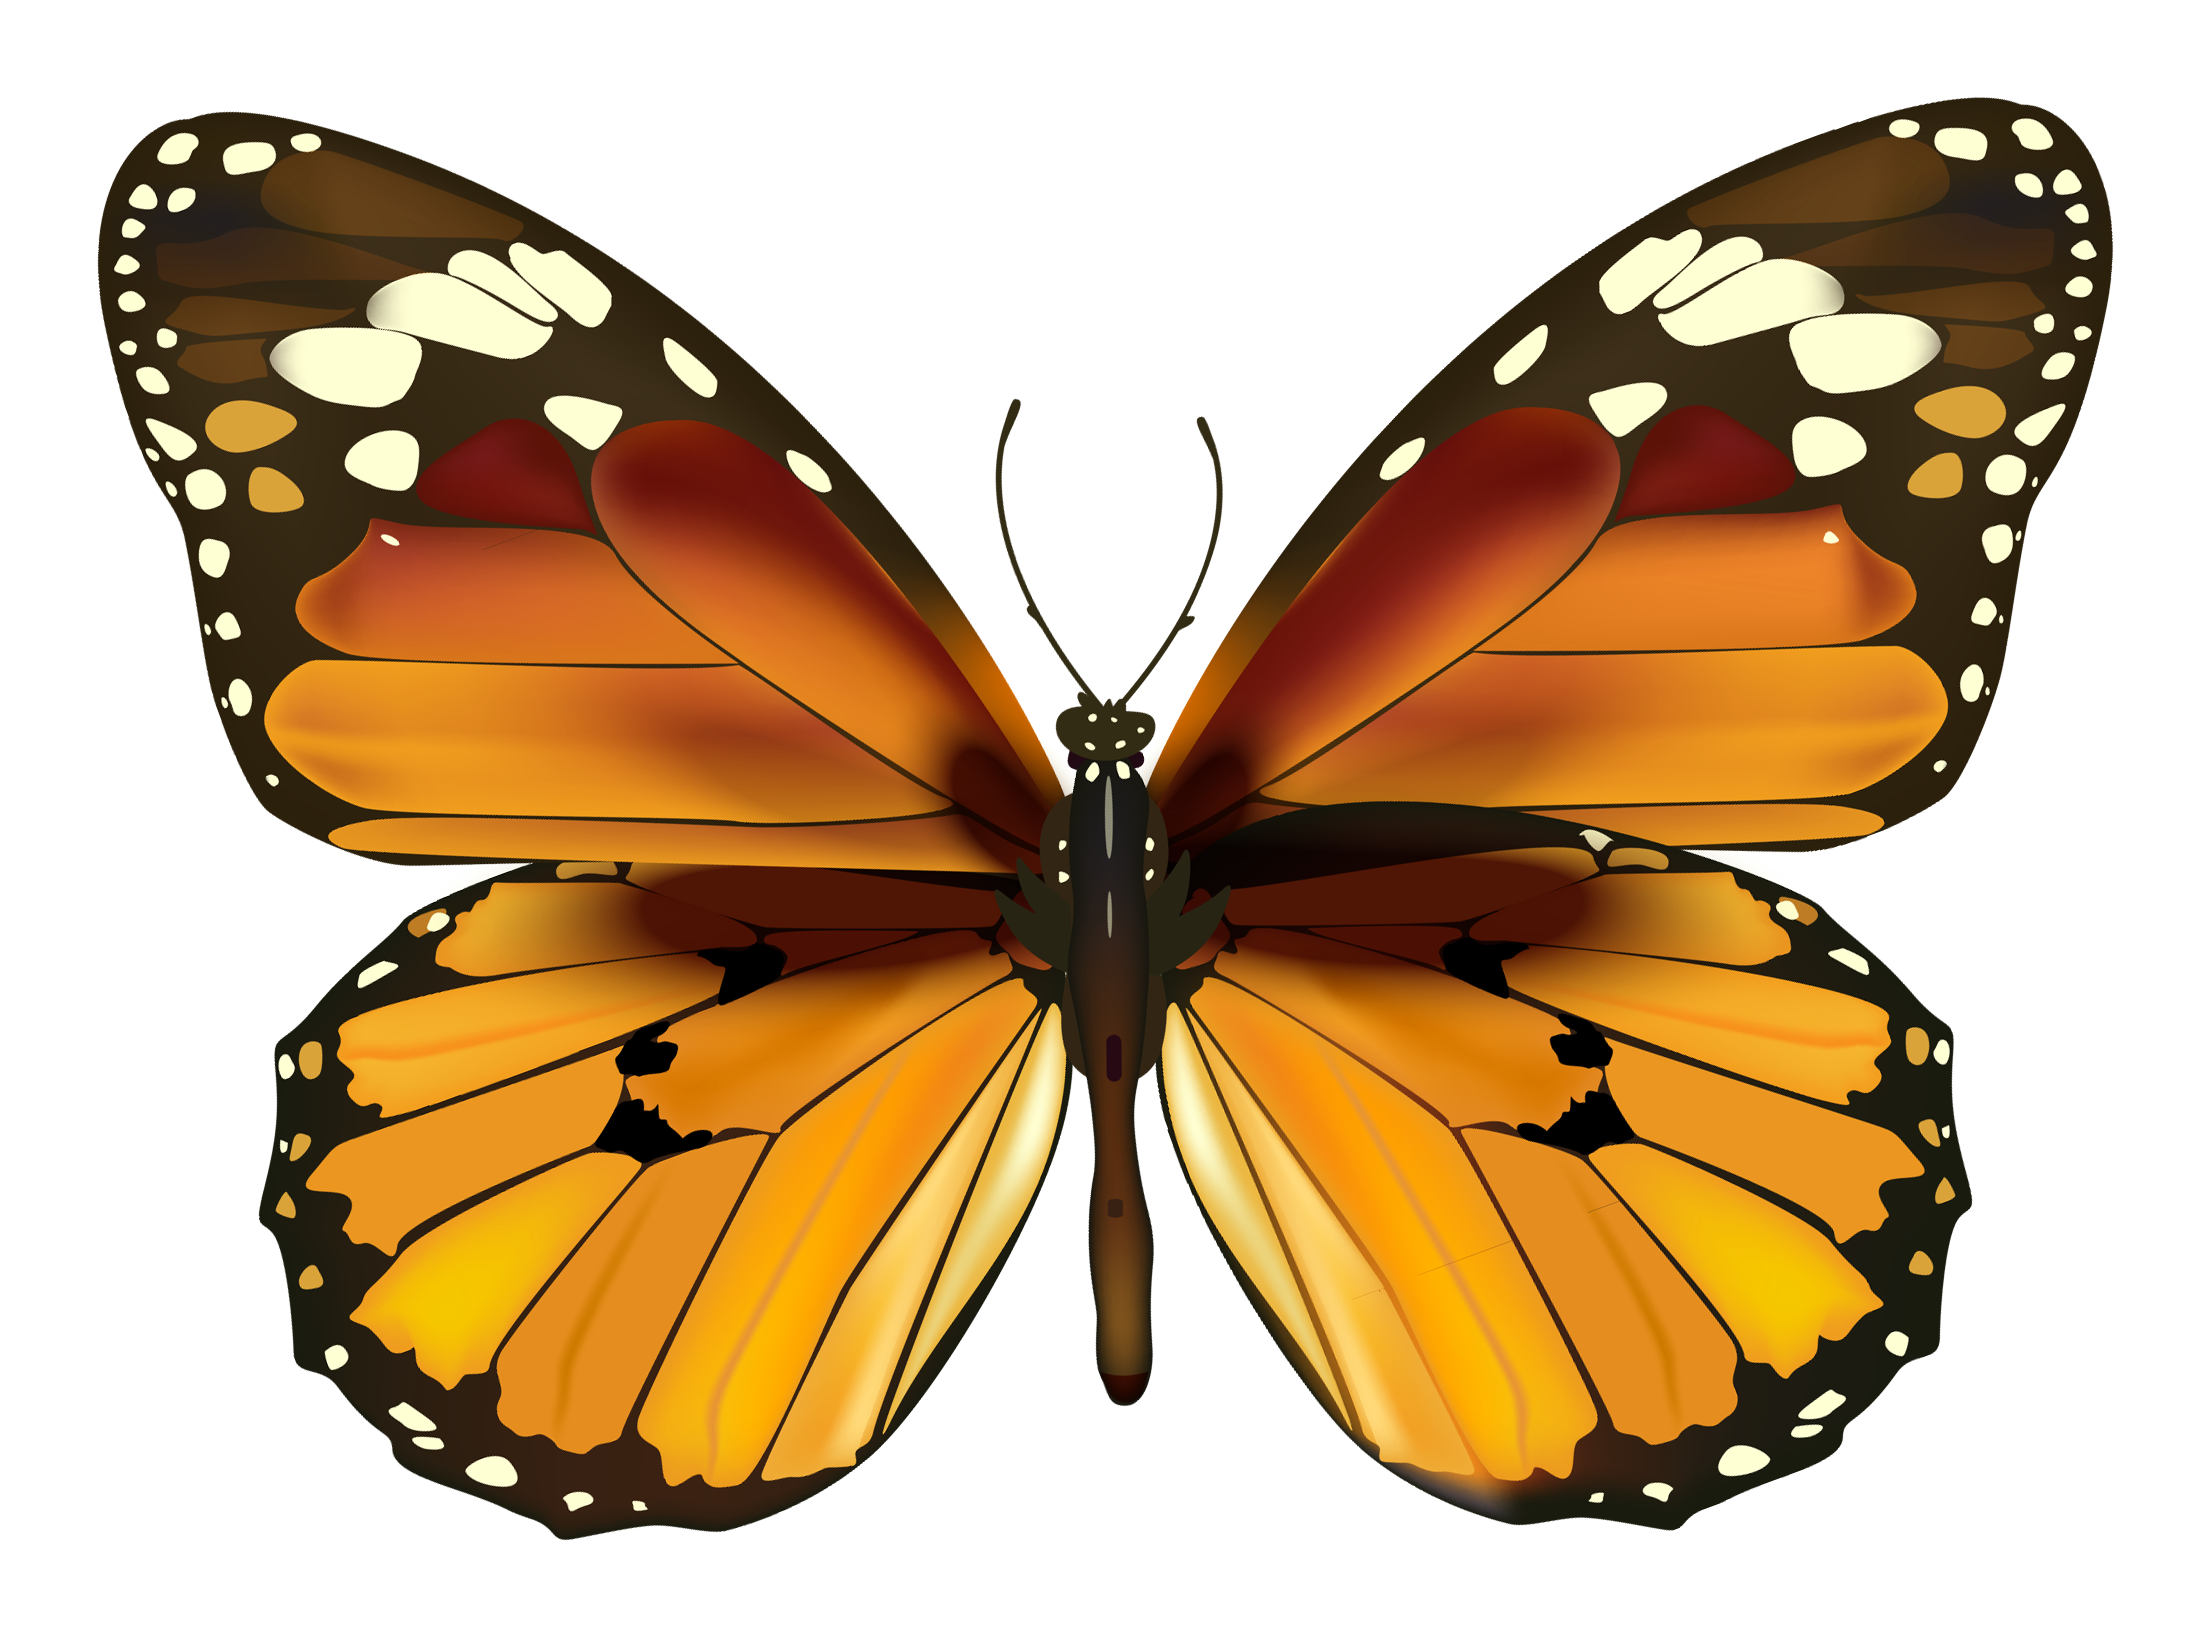 Drawn Butterfly Image 131.95 Kb